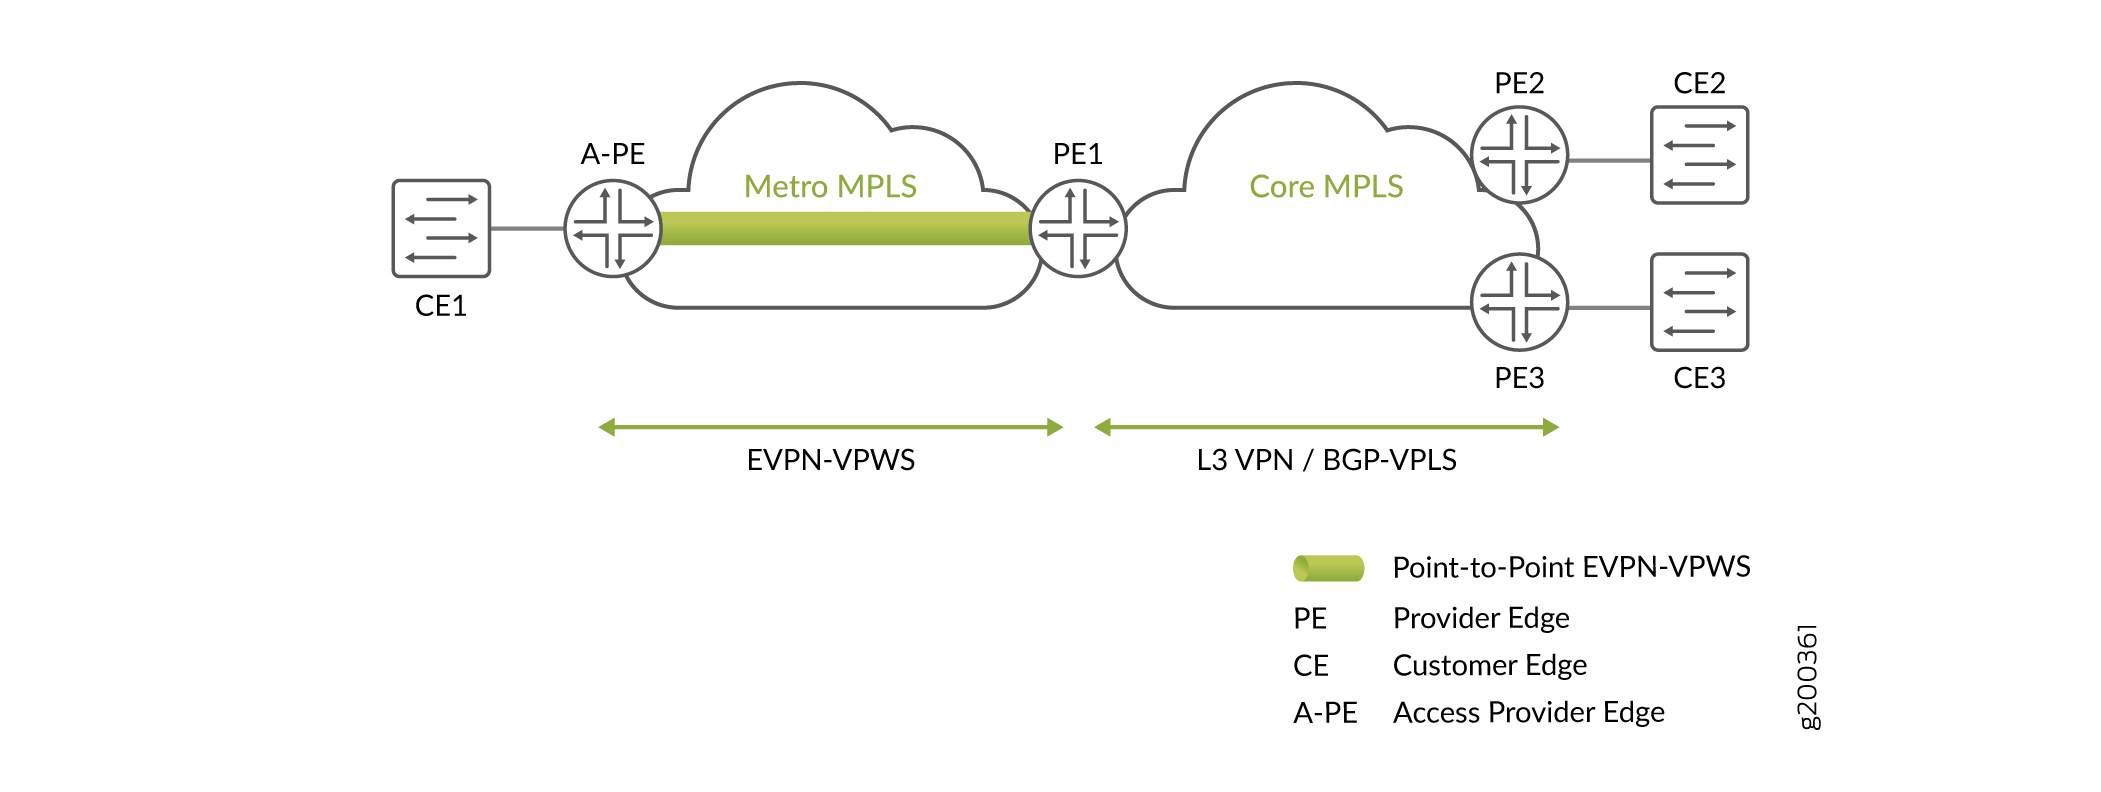 EVPN-VPWS with Pseudowire Subscriber Interface